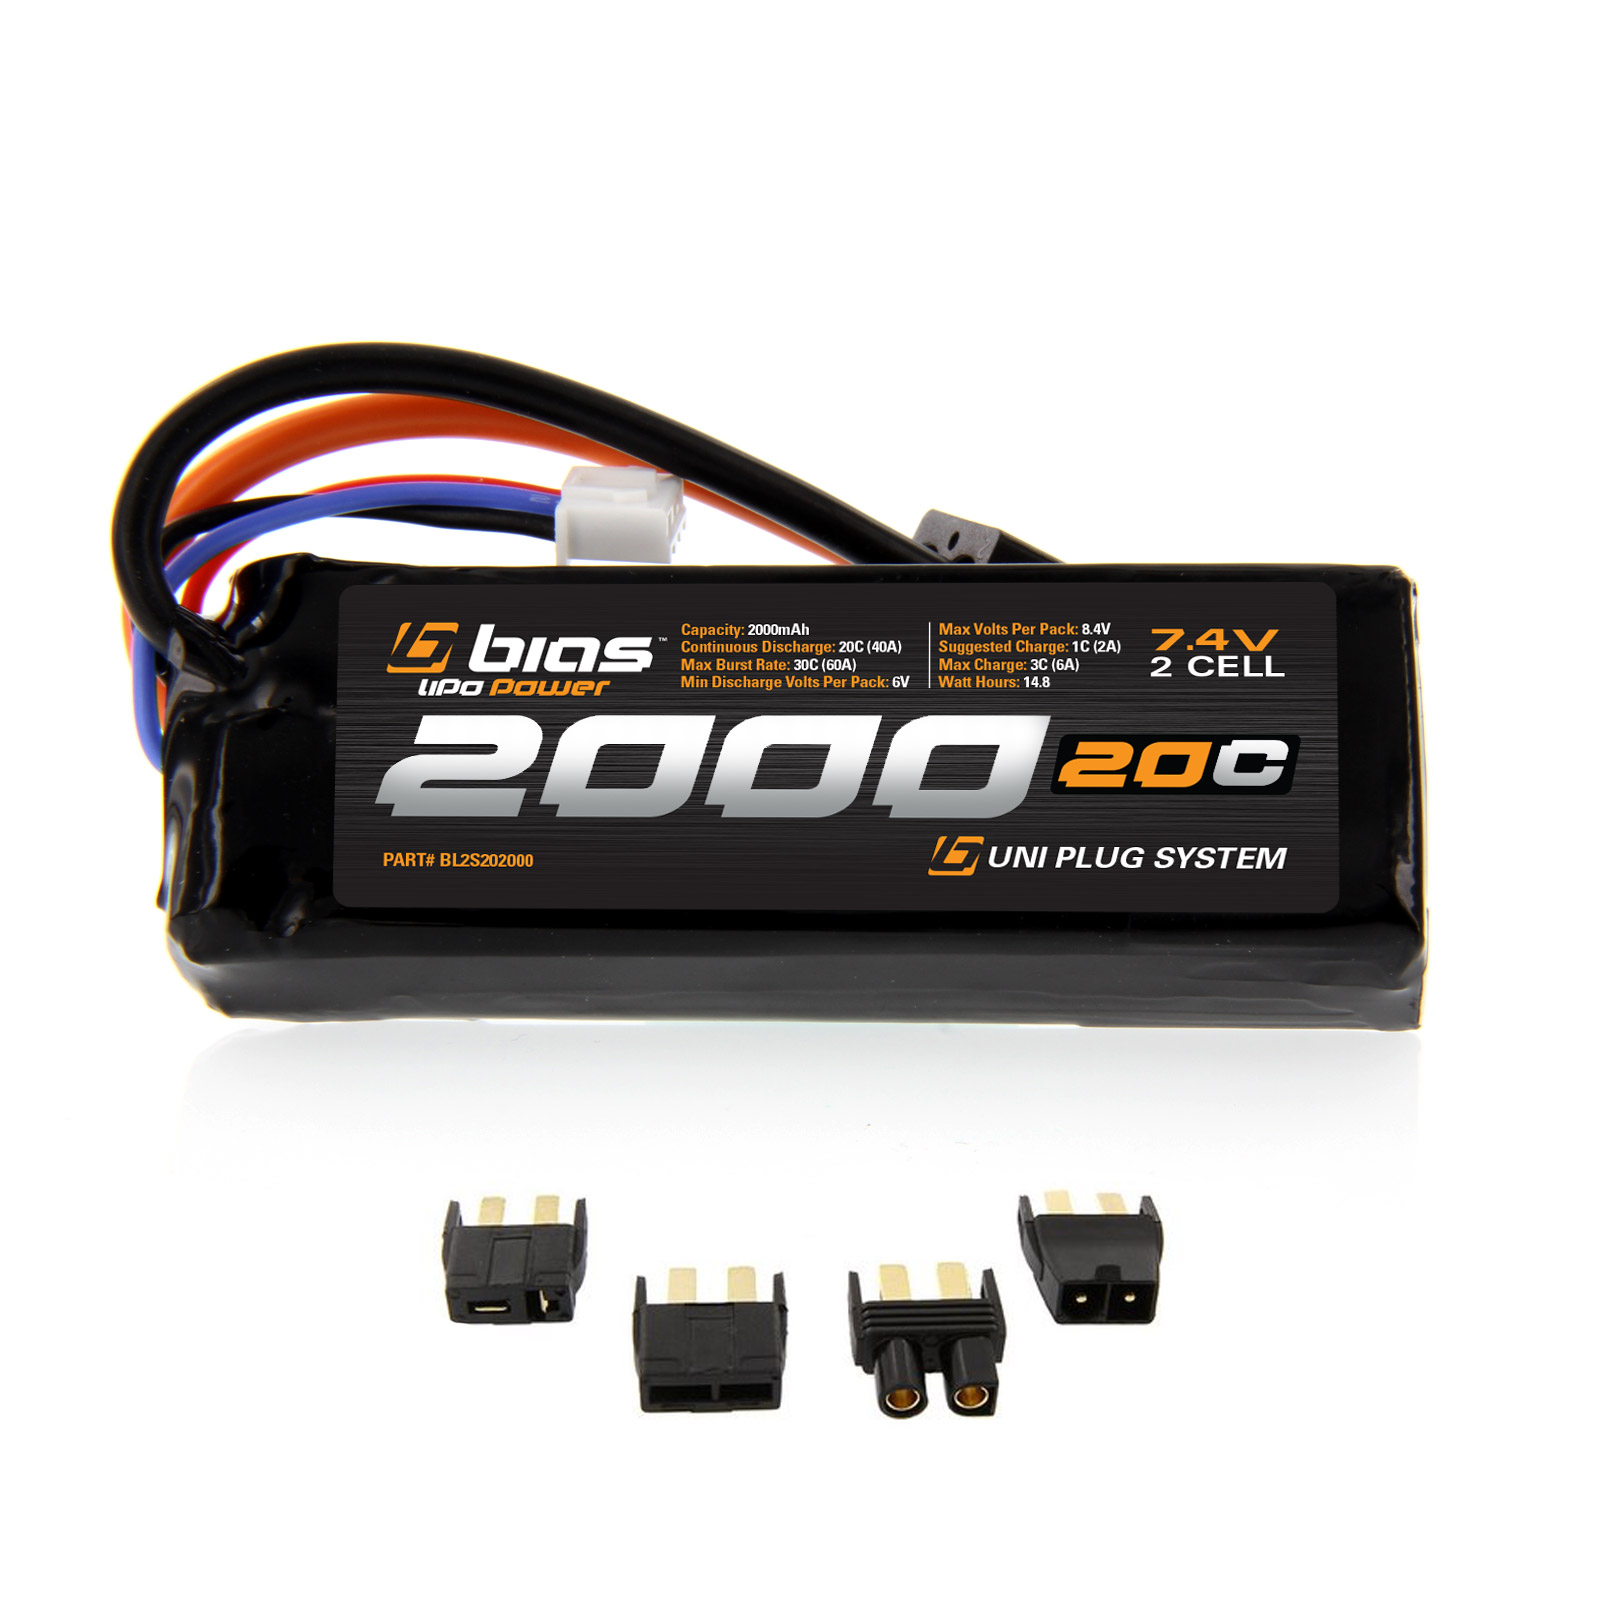 Bias LiPo Battery for Traxxas 1/16 Slash 4x4 20C 2S 2000mAh 7.4V LiPo (EC3/Deans/Traxxas/Tamiya Plug) for RC Car, Truck, Buggy, Boat, Heli, and Drone